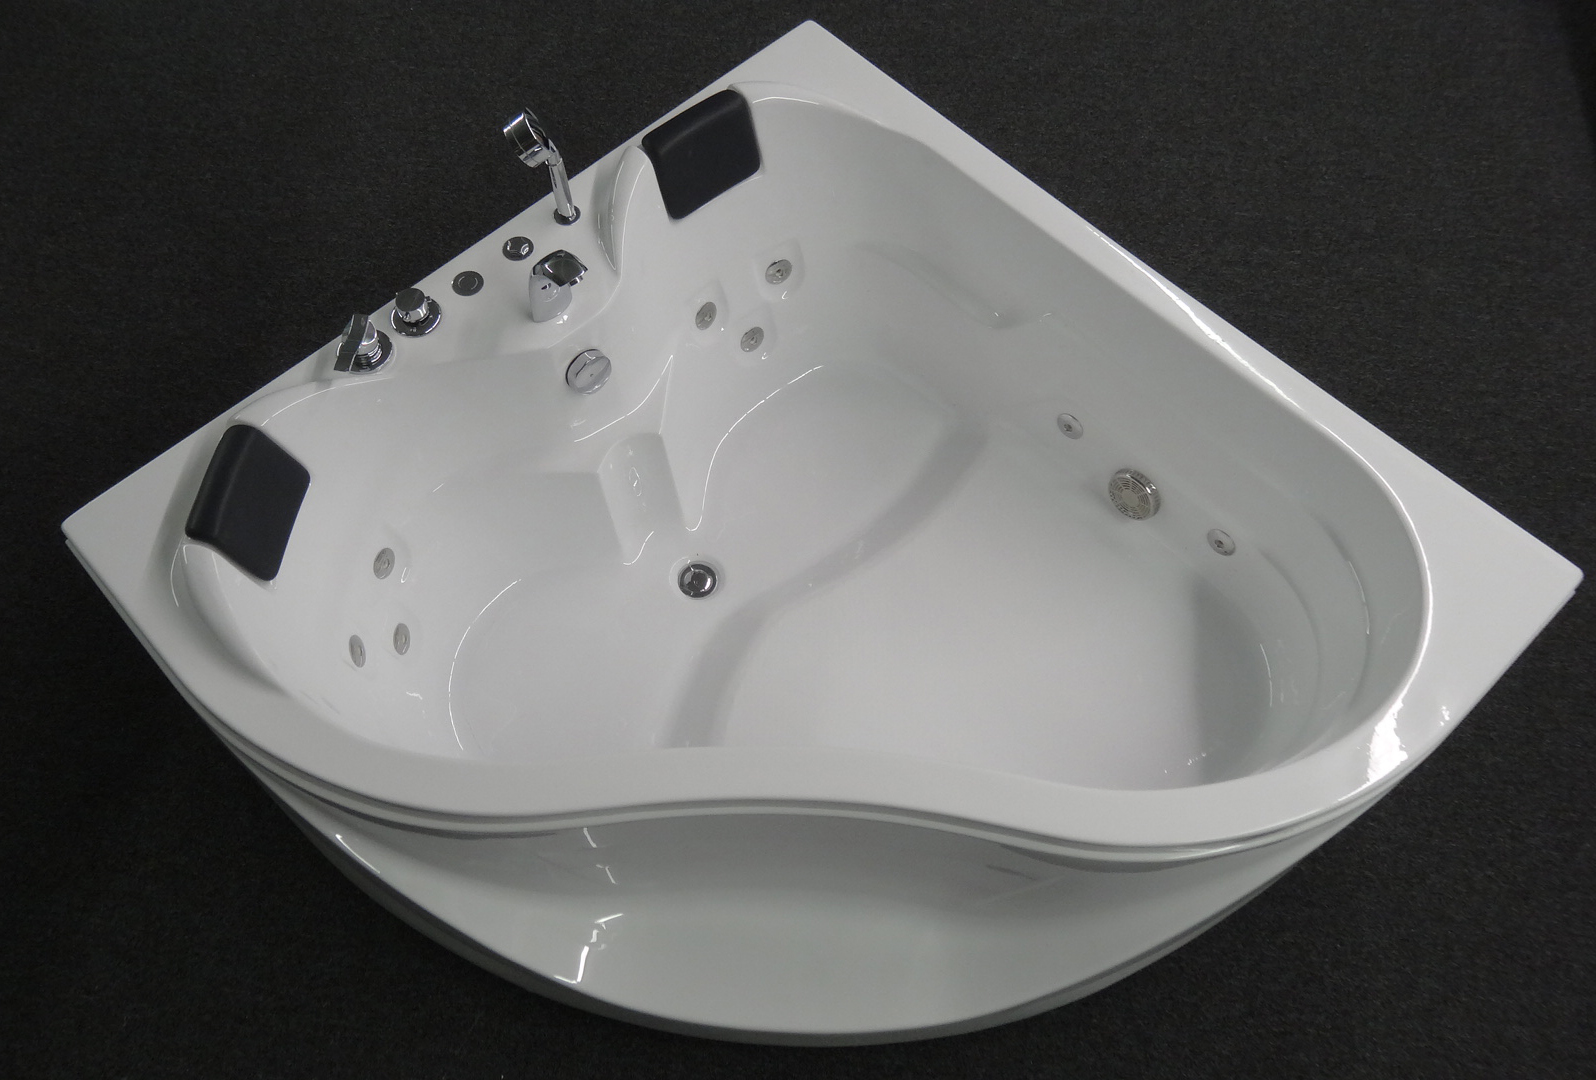 Corner Jetted Tub 2 Person Corner Jetted Bathtubs Tubethevote 2